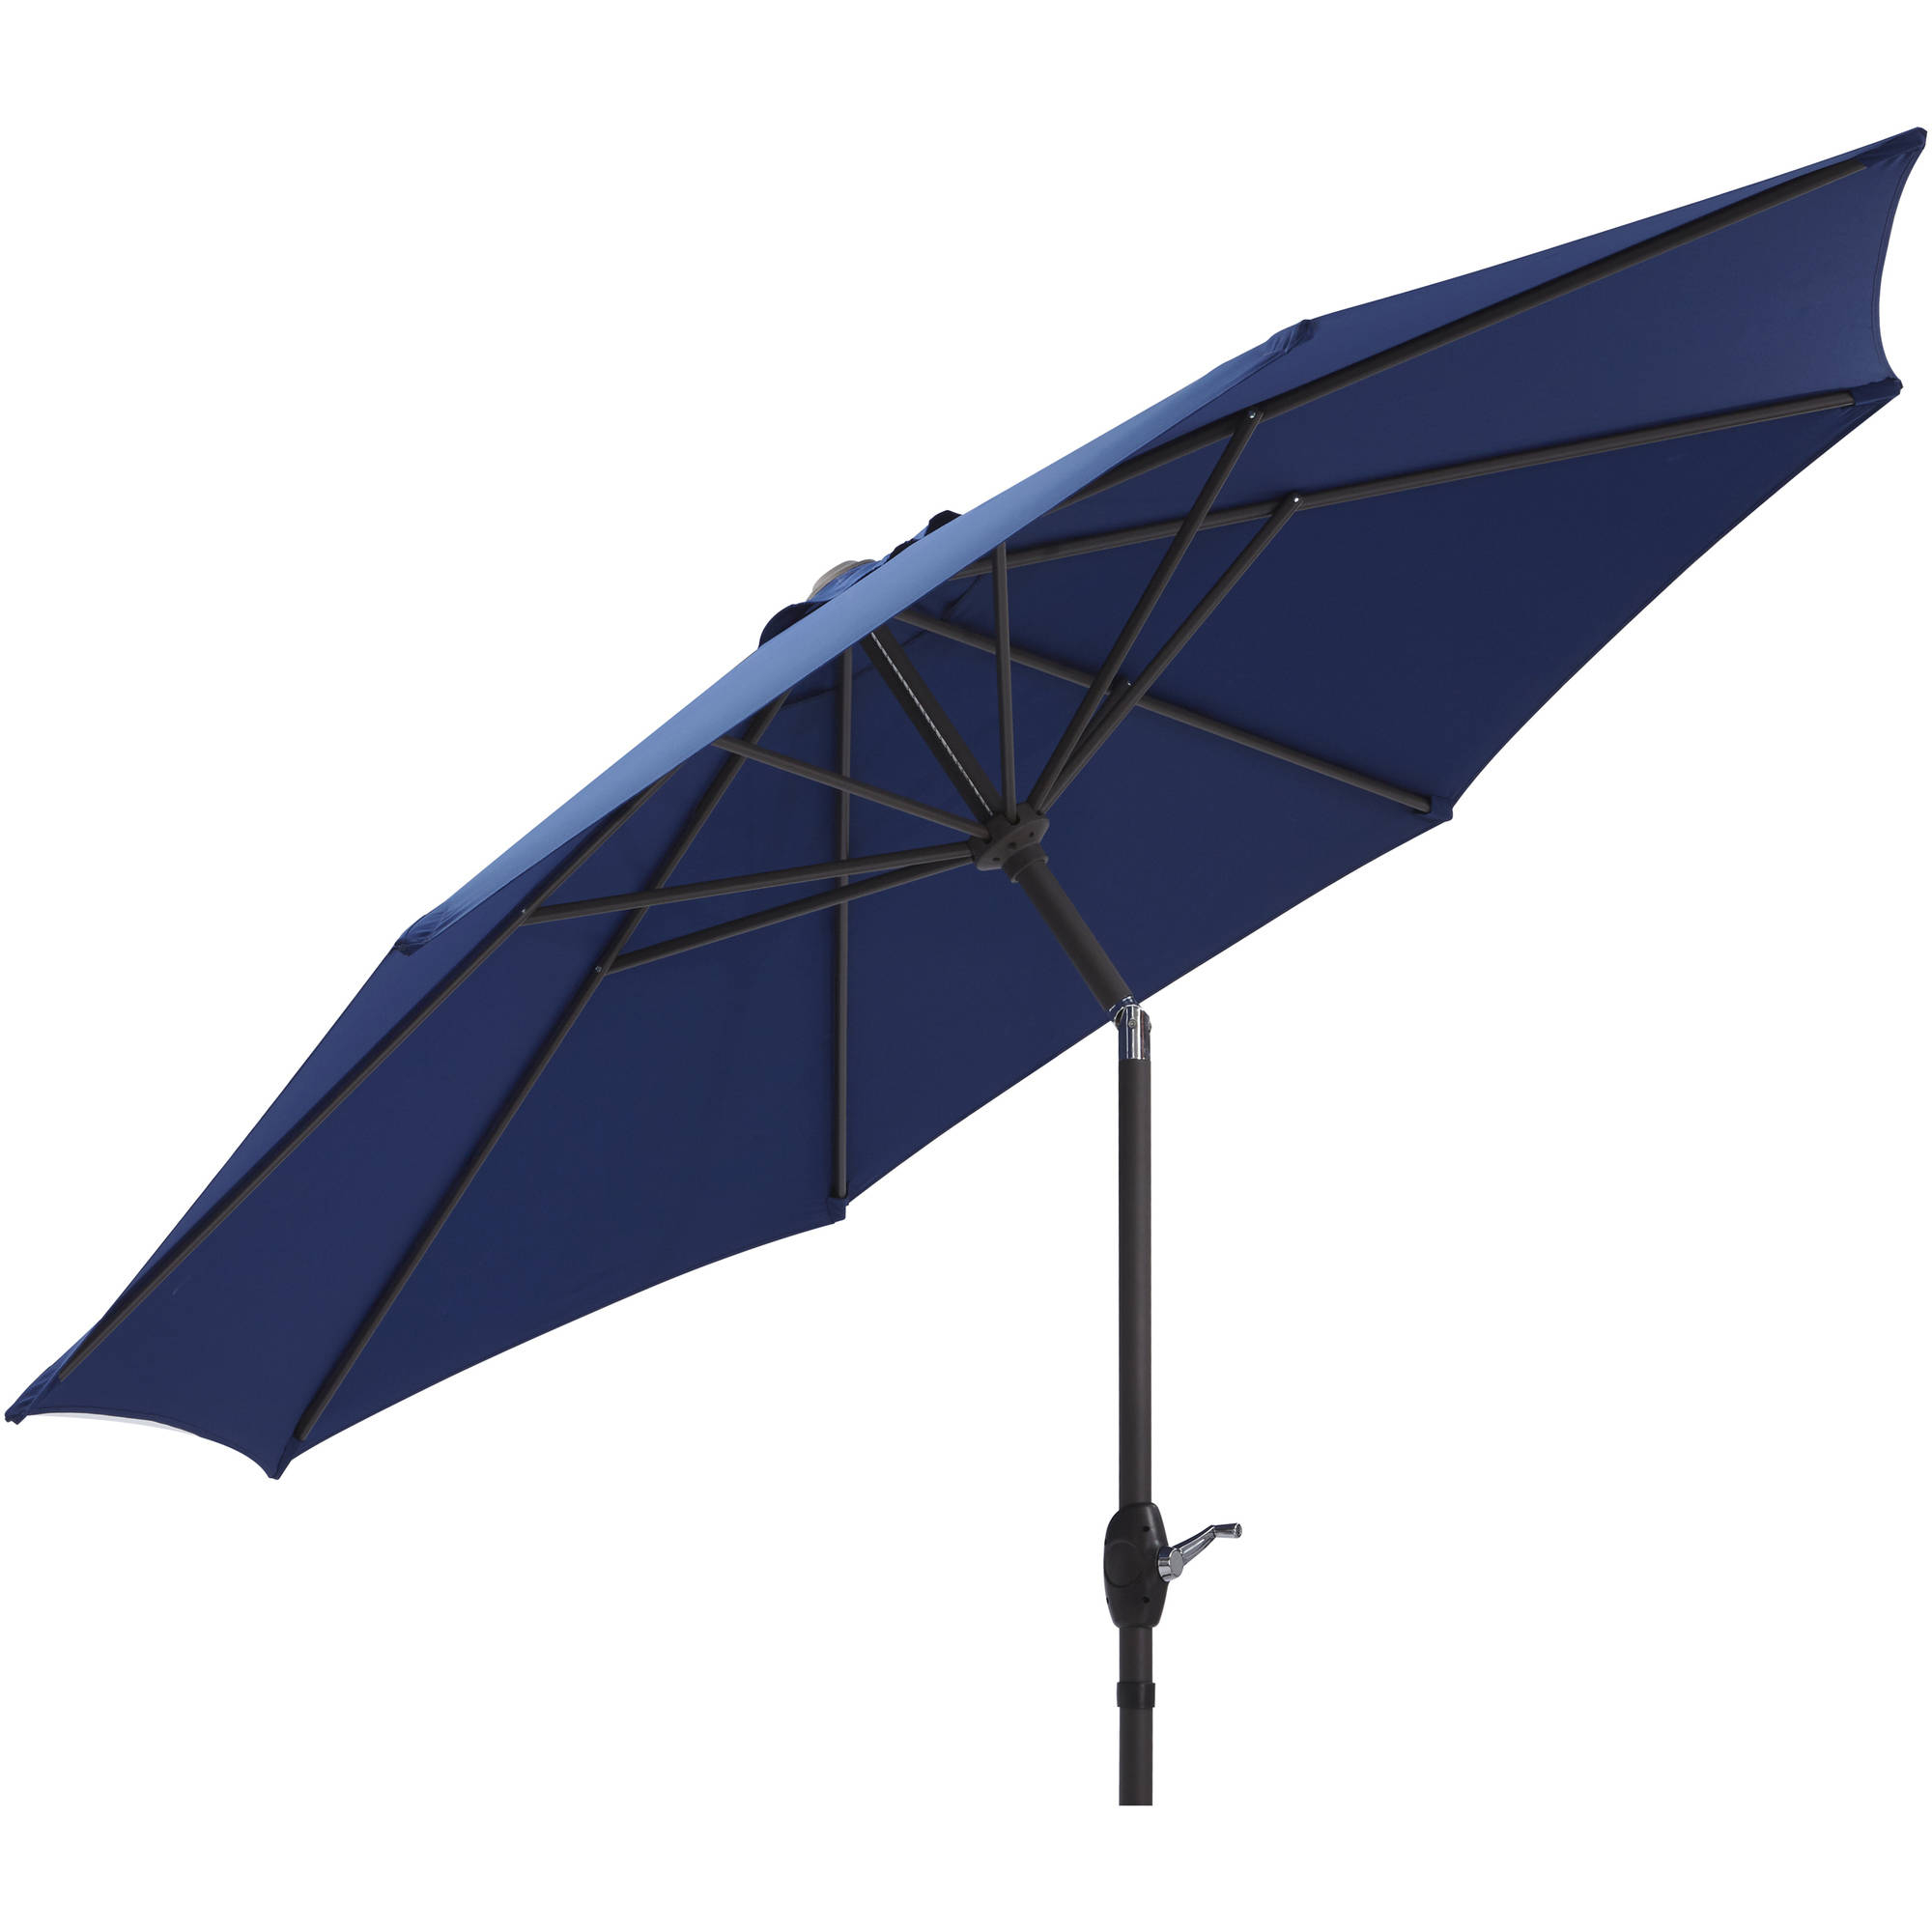 New Haven Market Umbrellas With Regard To 2020 Mainstays 9' Market Umbrella, Navy Blue With Brown Frame (View 12 of 20)